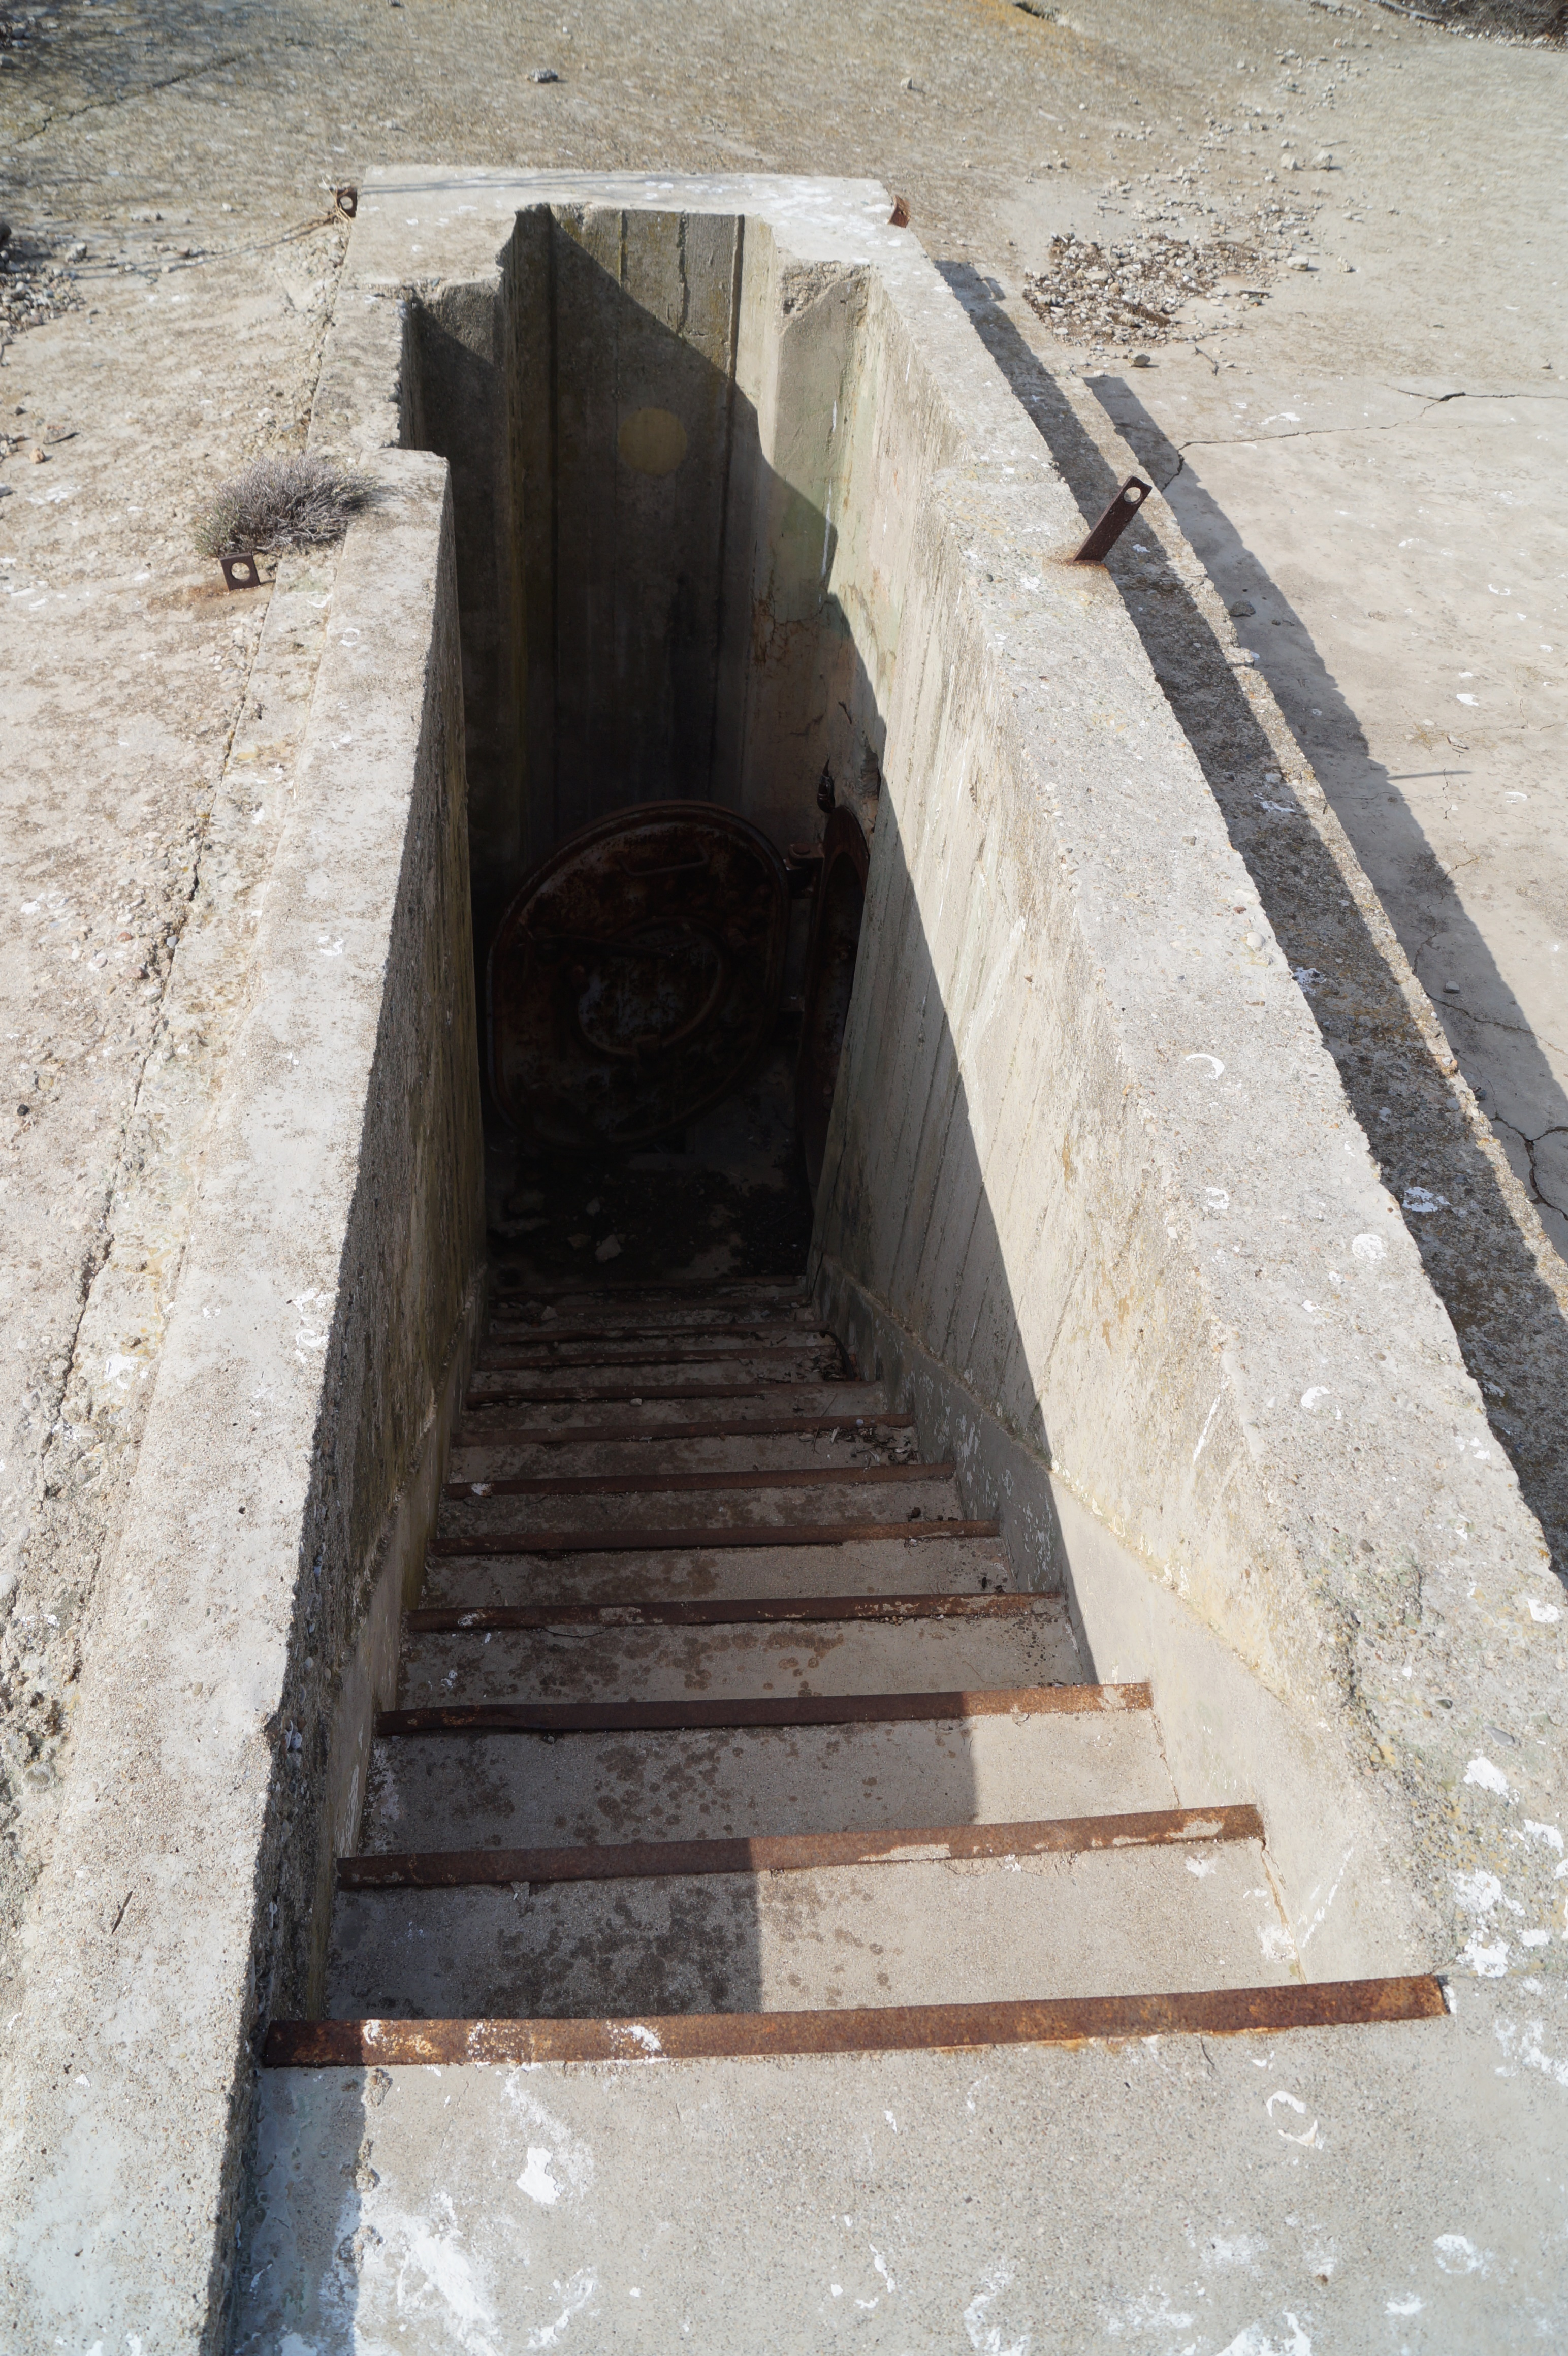 Concrete staircase to the entrance of the bunker complex.